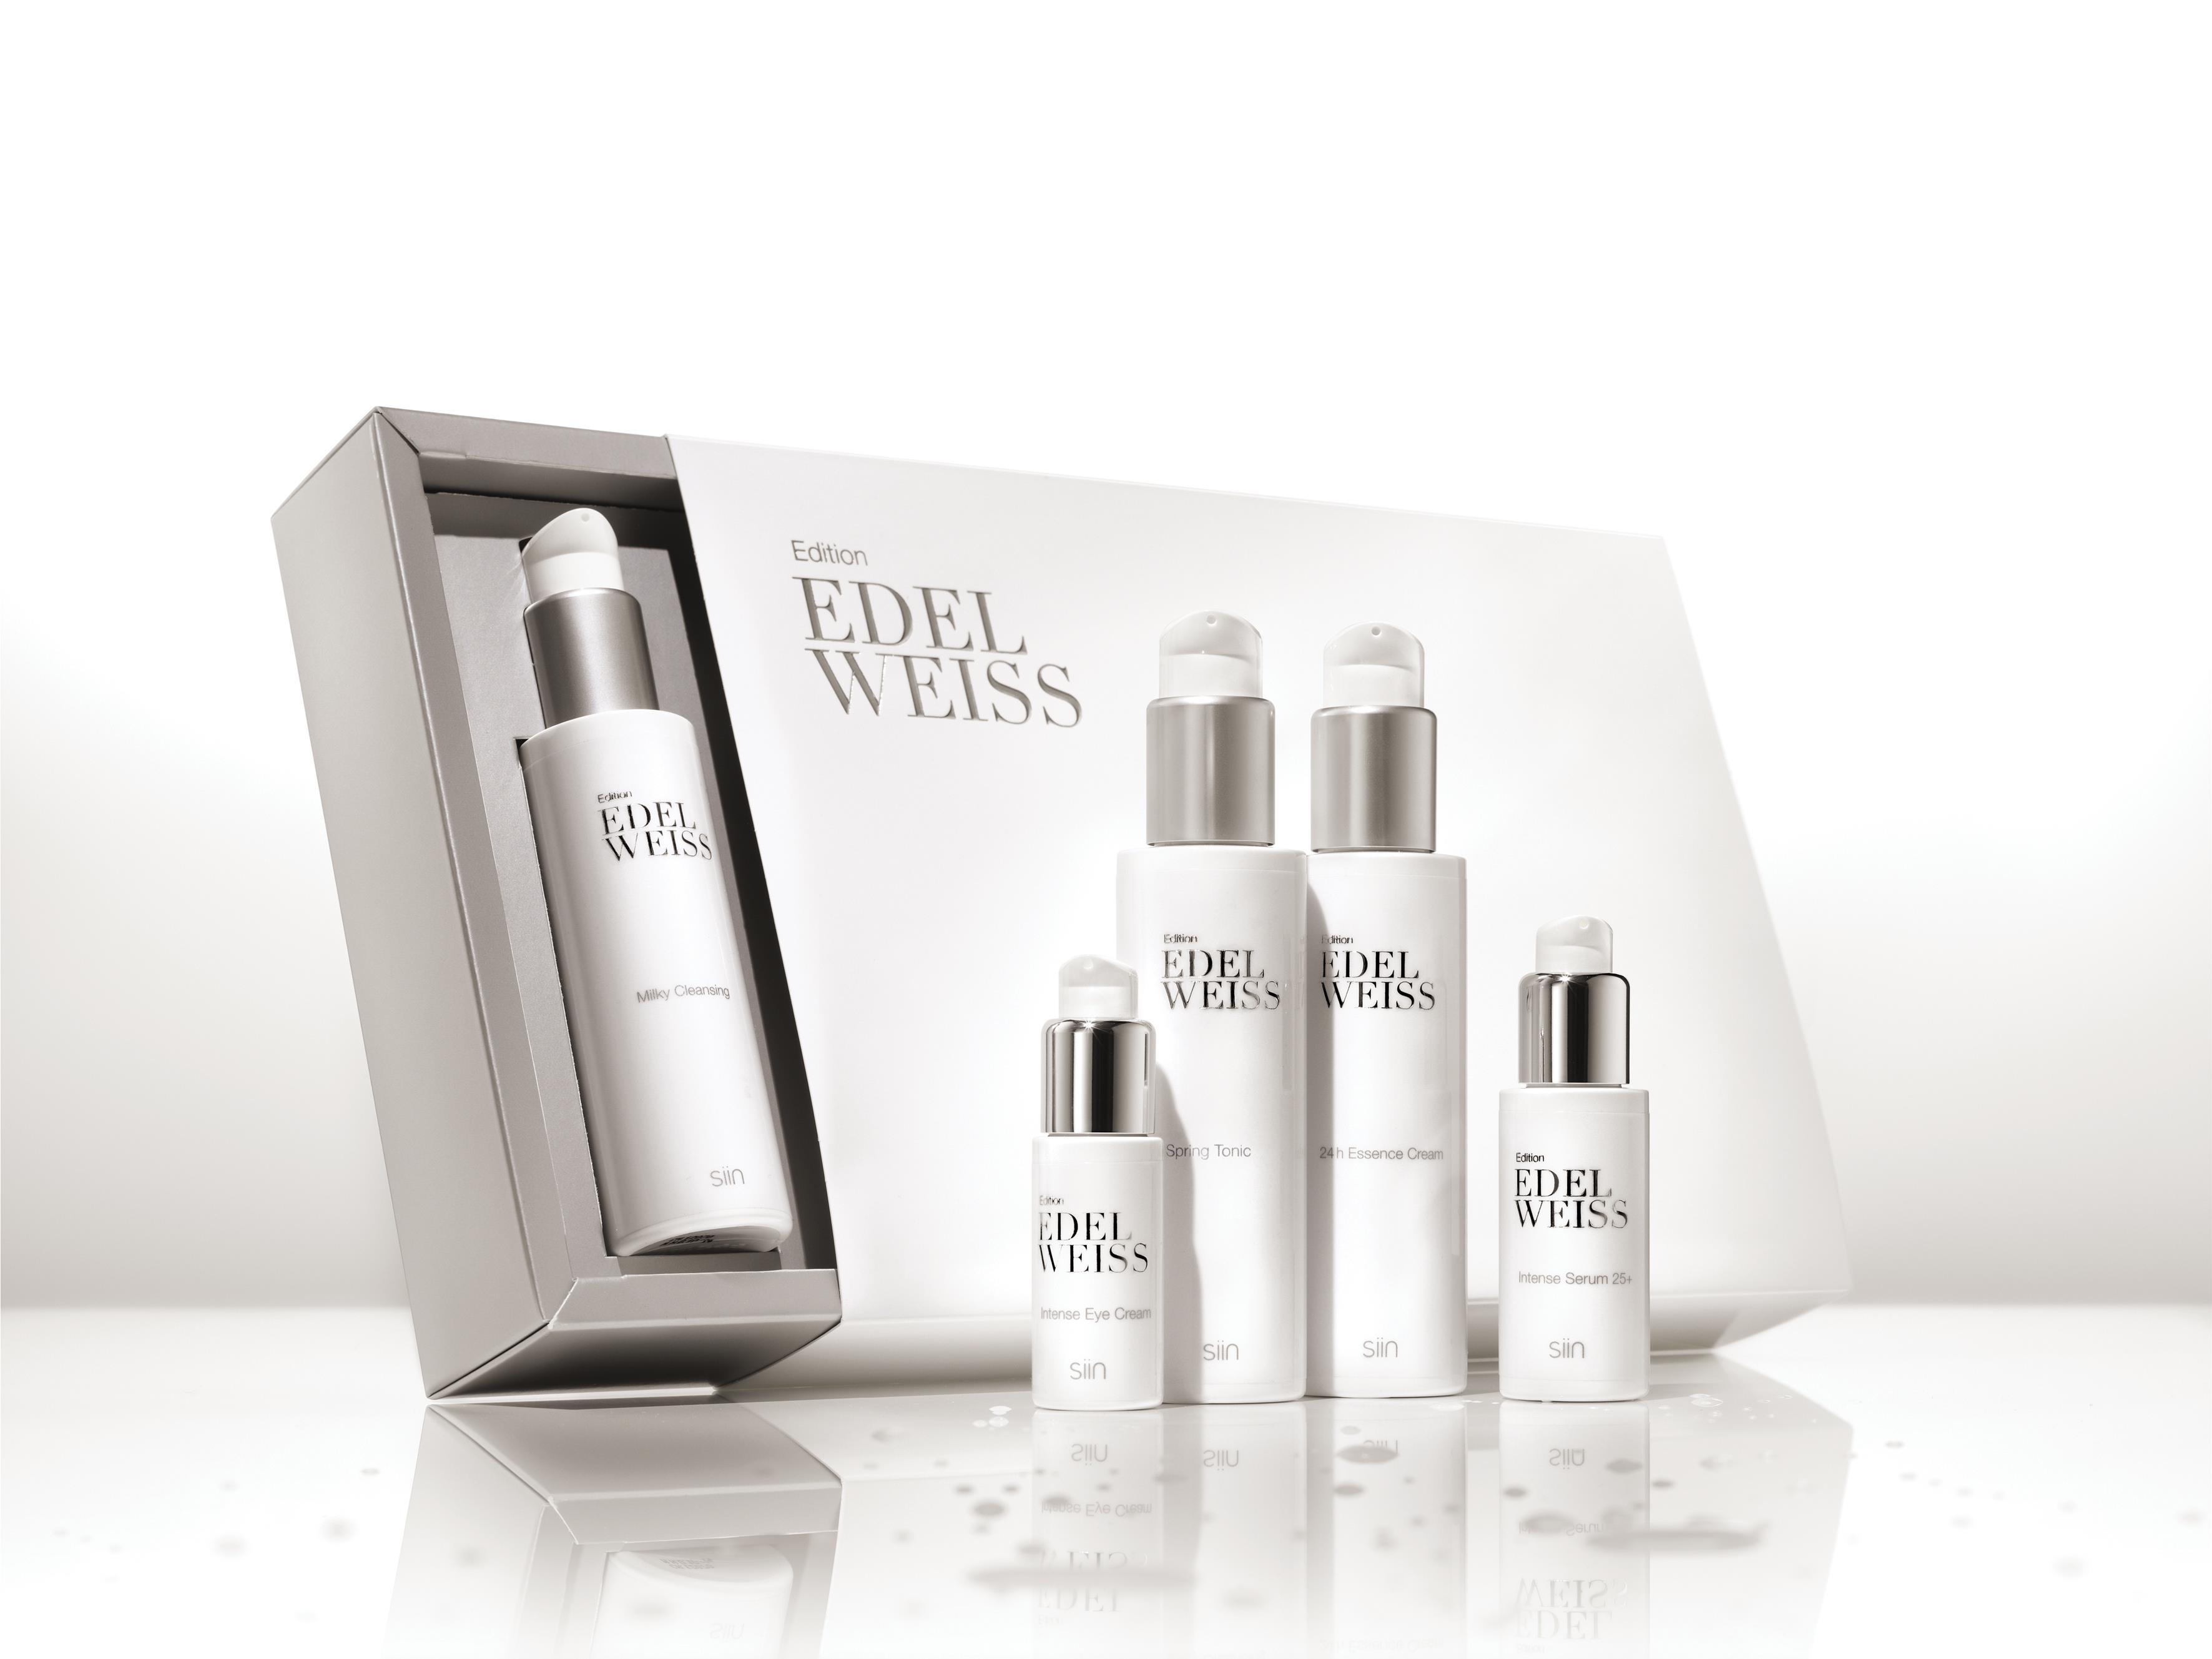 Edition Edelweiss Beauty Set complete 25+